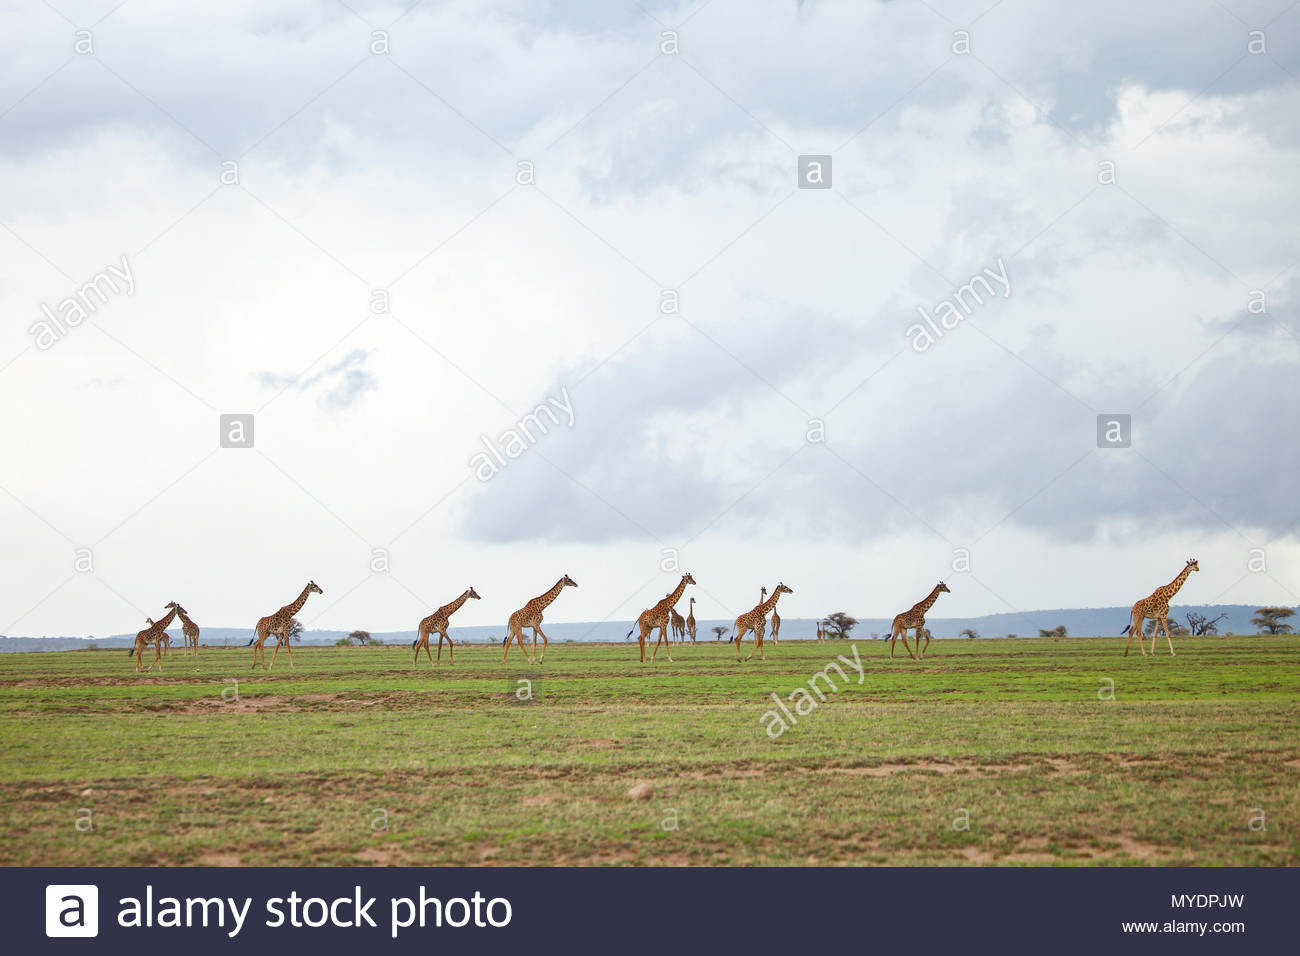 A herd of Masai giraffe walk across the Serengeti plains. - Stock Image